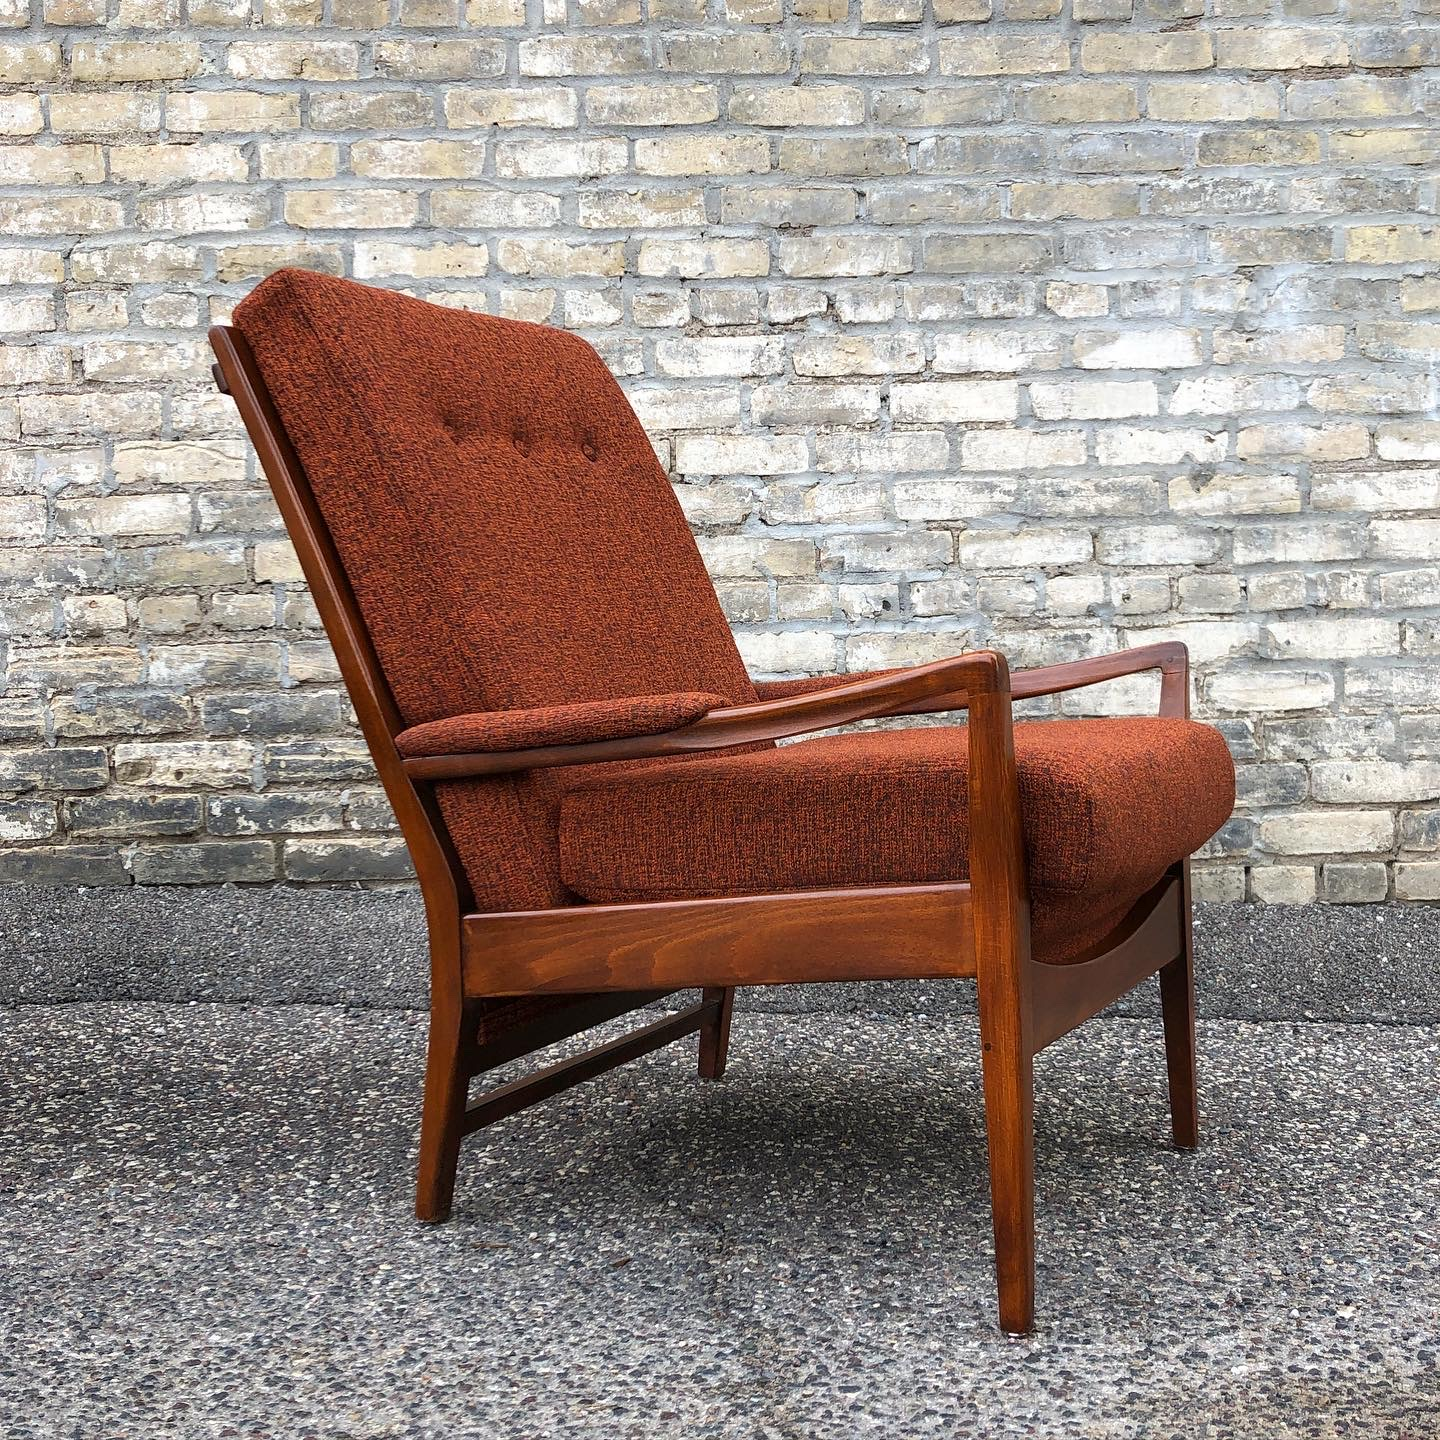 NNK_chairs_tall-back_Bernhardt-Scatter-Chili_3